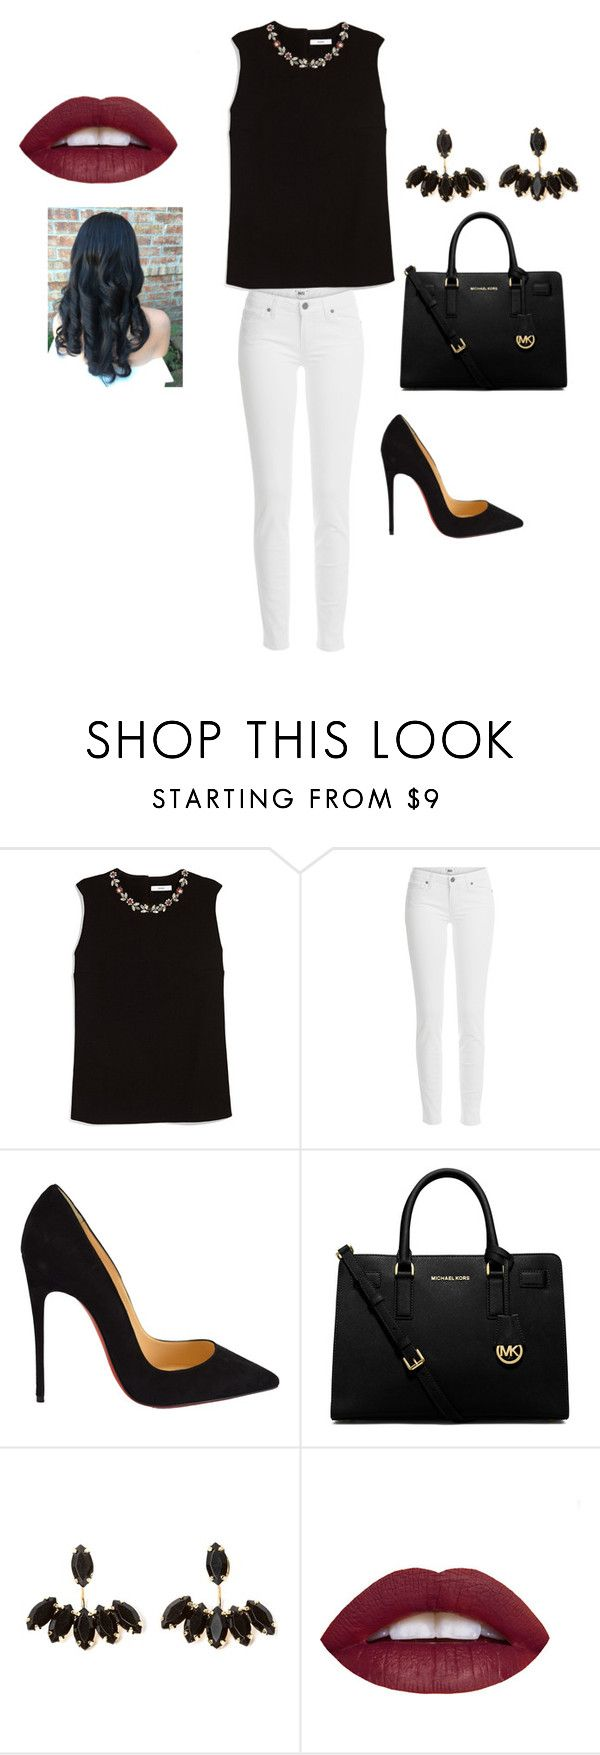 """""""Dressy Day & Night"""" by graciexluv on Polyvore featuring Erdem, Paige Denim, Christian Louboutin, MICHAEL Michael Kors, women's clothing, women, female, woman, misses and juniors"""